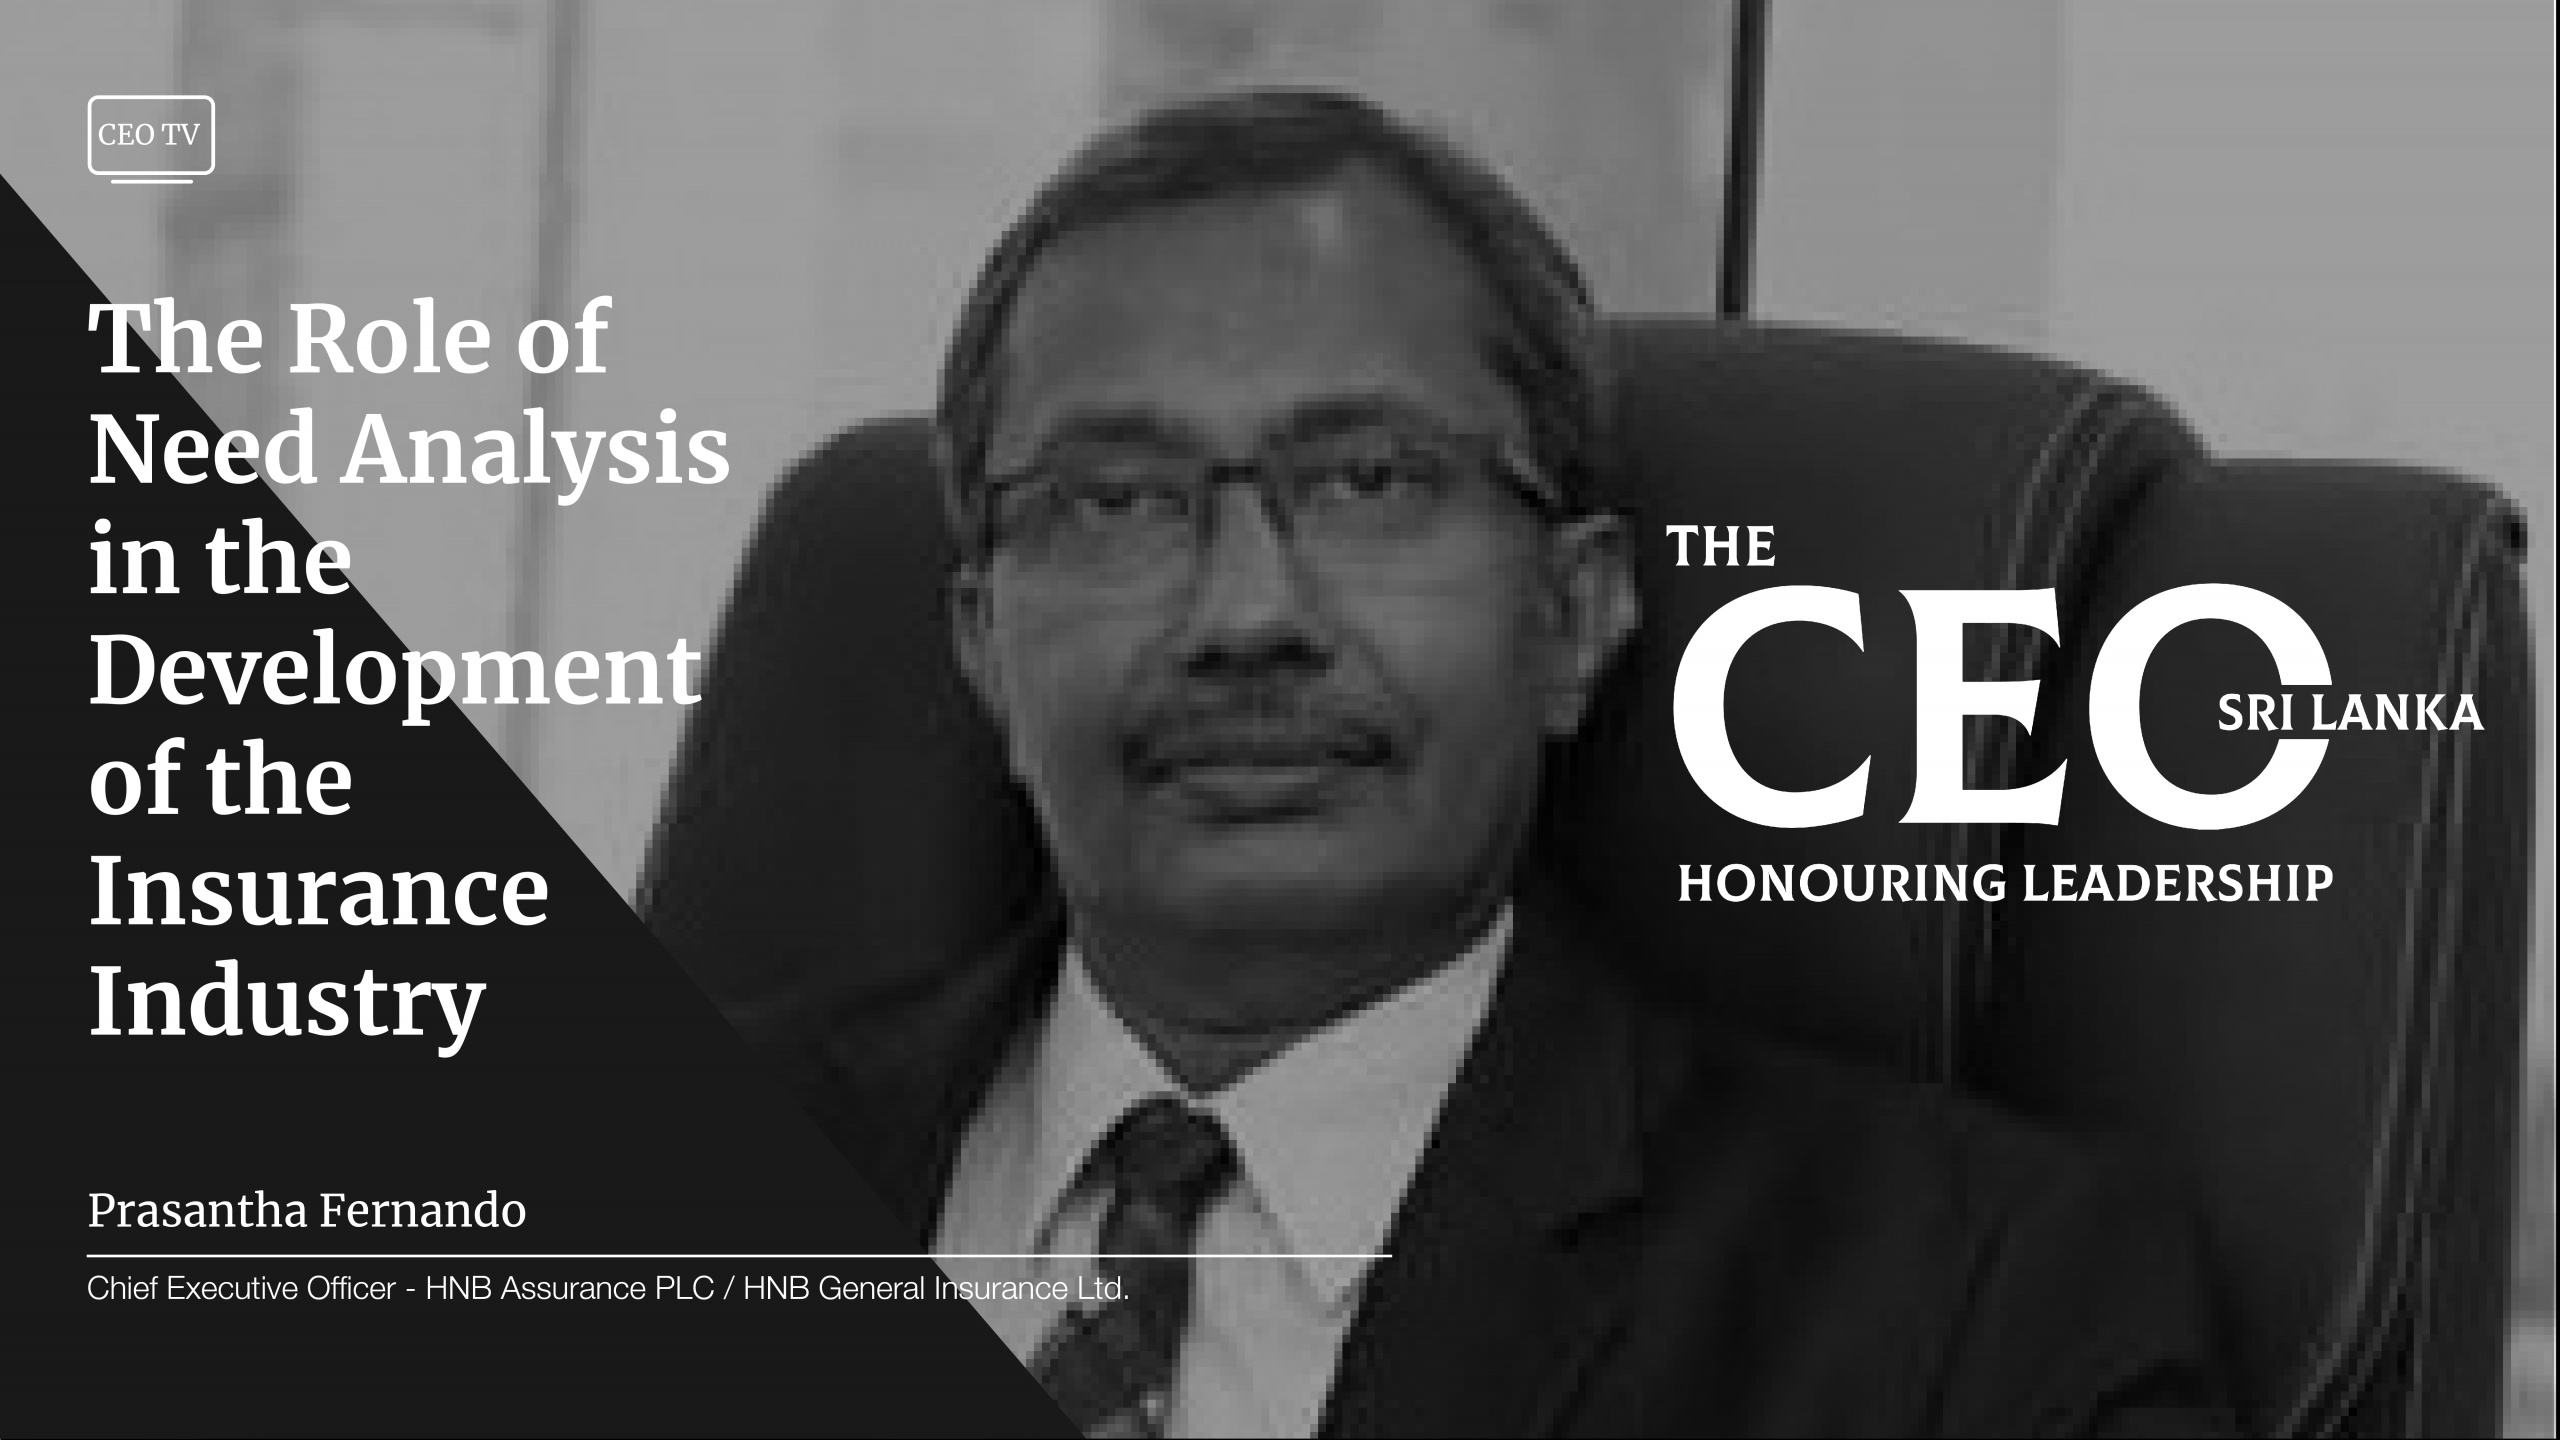 An interview with Mr. Prasantha Fernando, the CEO of HNB Assurance PLC and HNB General Insurance Ltd